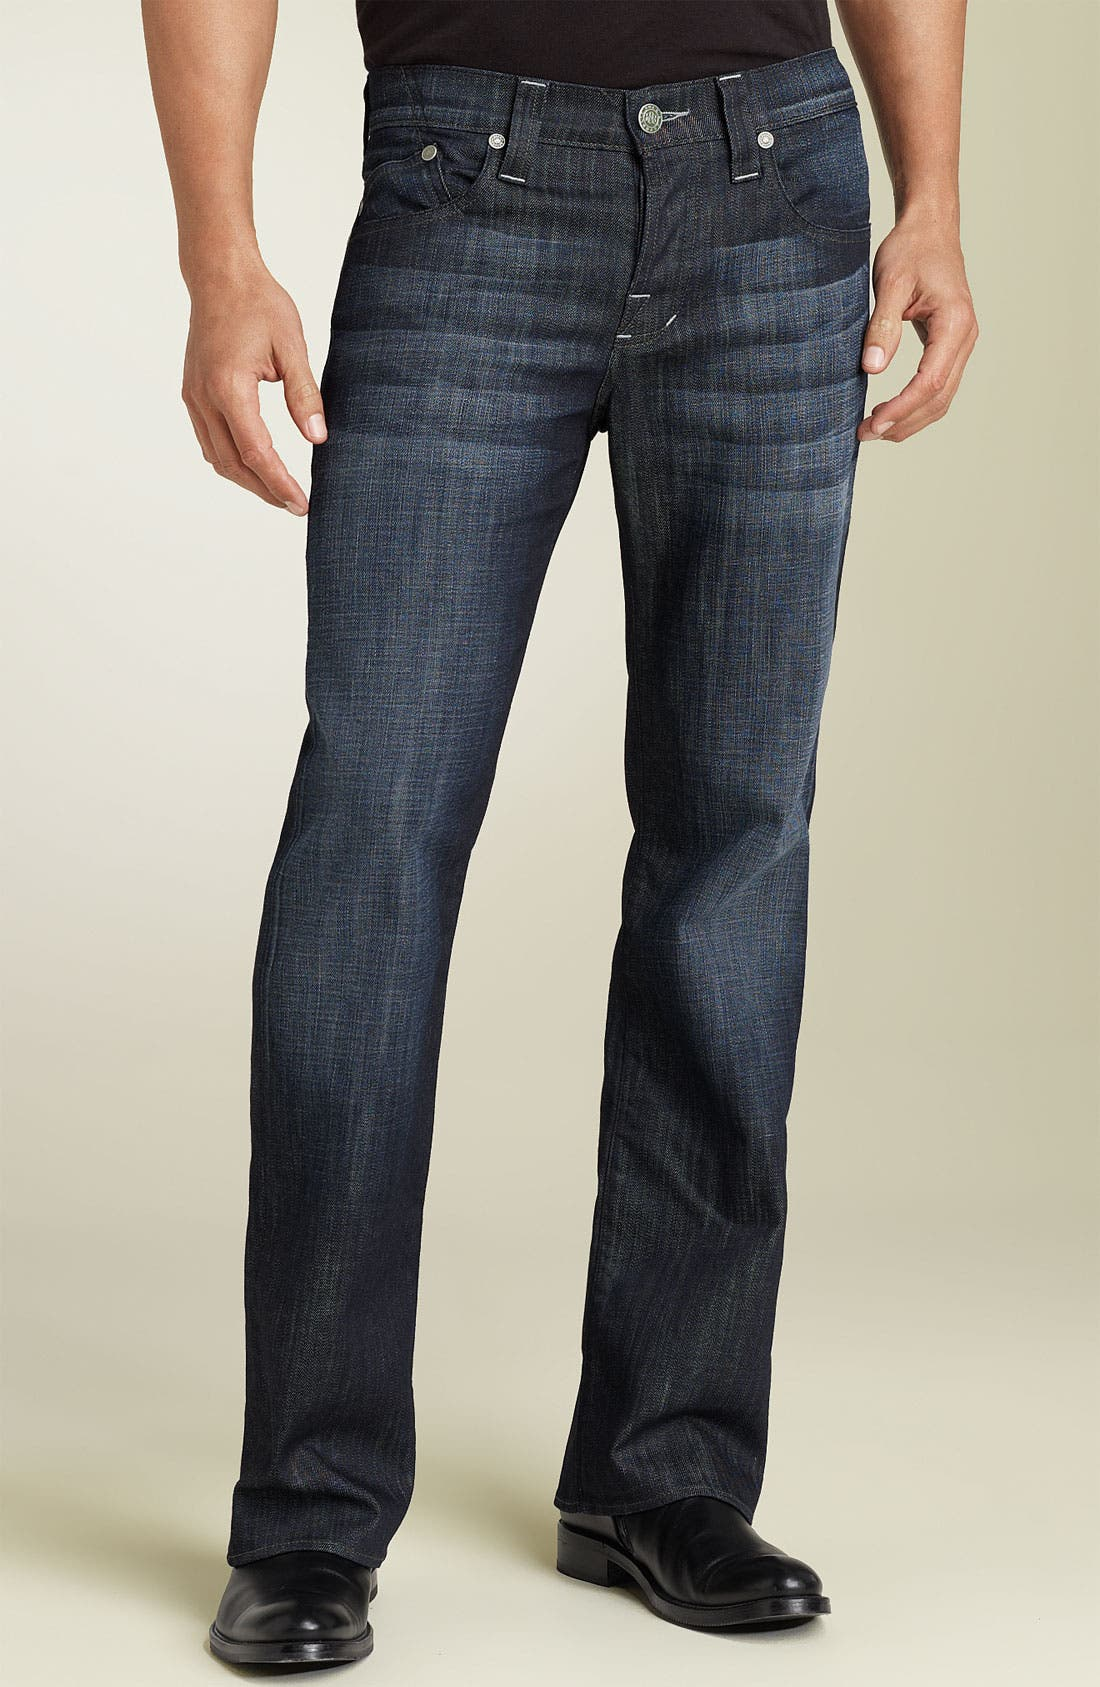 ROCK & REPUBLIC,                             'Henlee' Bootcut Jeans,                             Alternate thumbnail 2, color,                             400